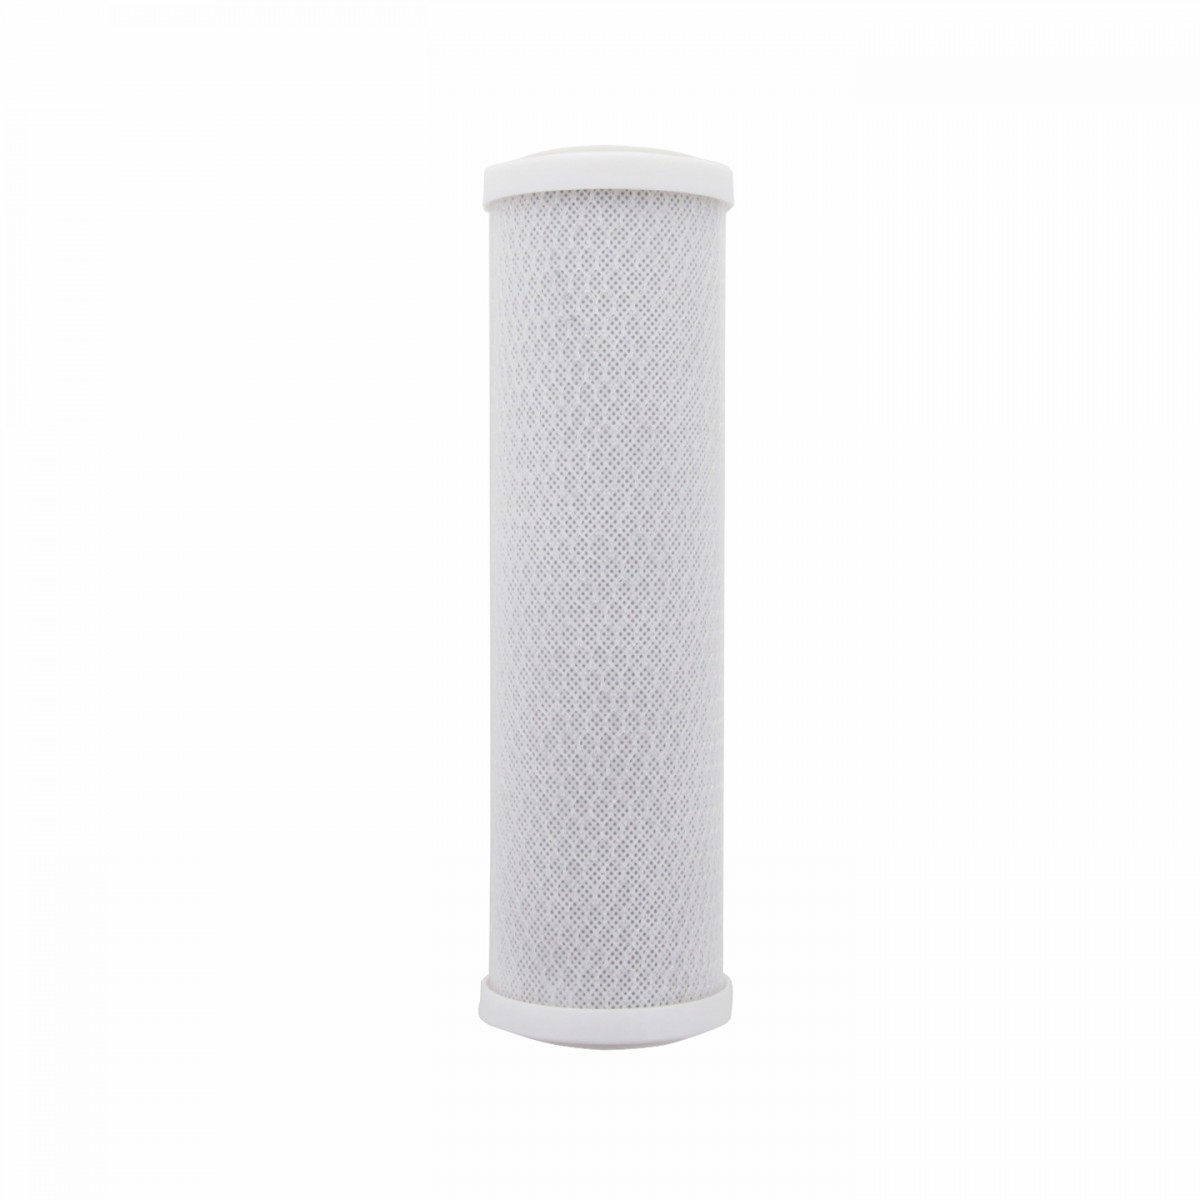 Cb 25 1010 Hydronix Carbon Water Filter 226